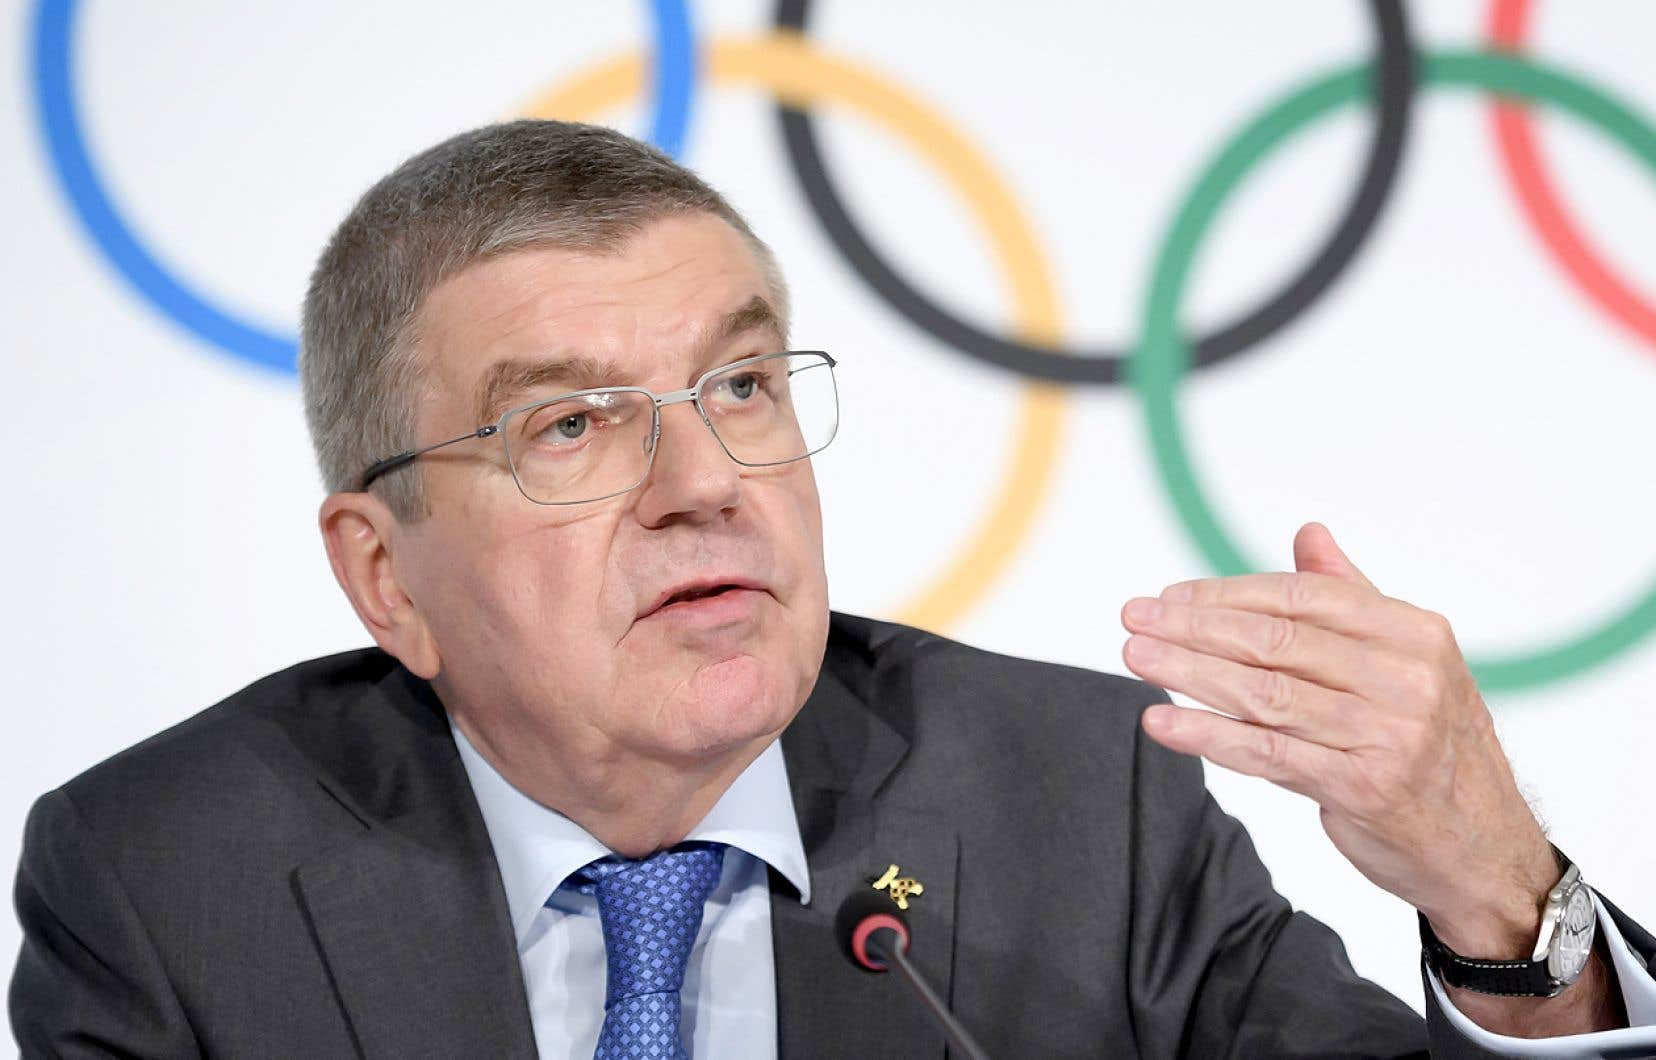 Le président du Comité international olympique Thomas Bach